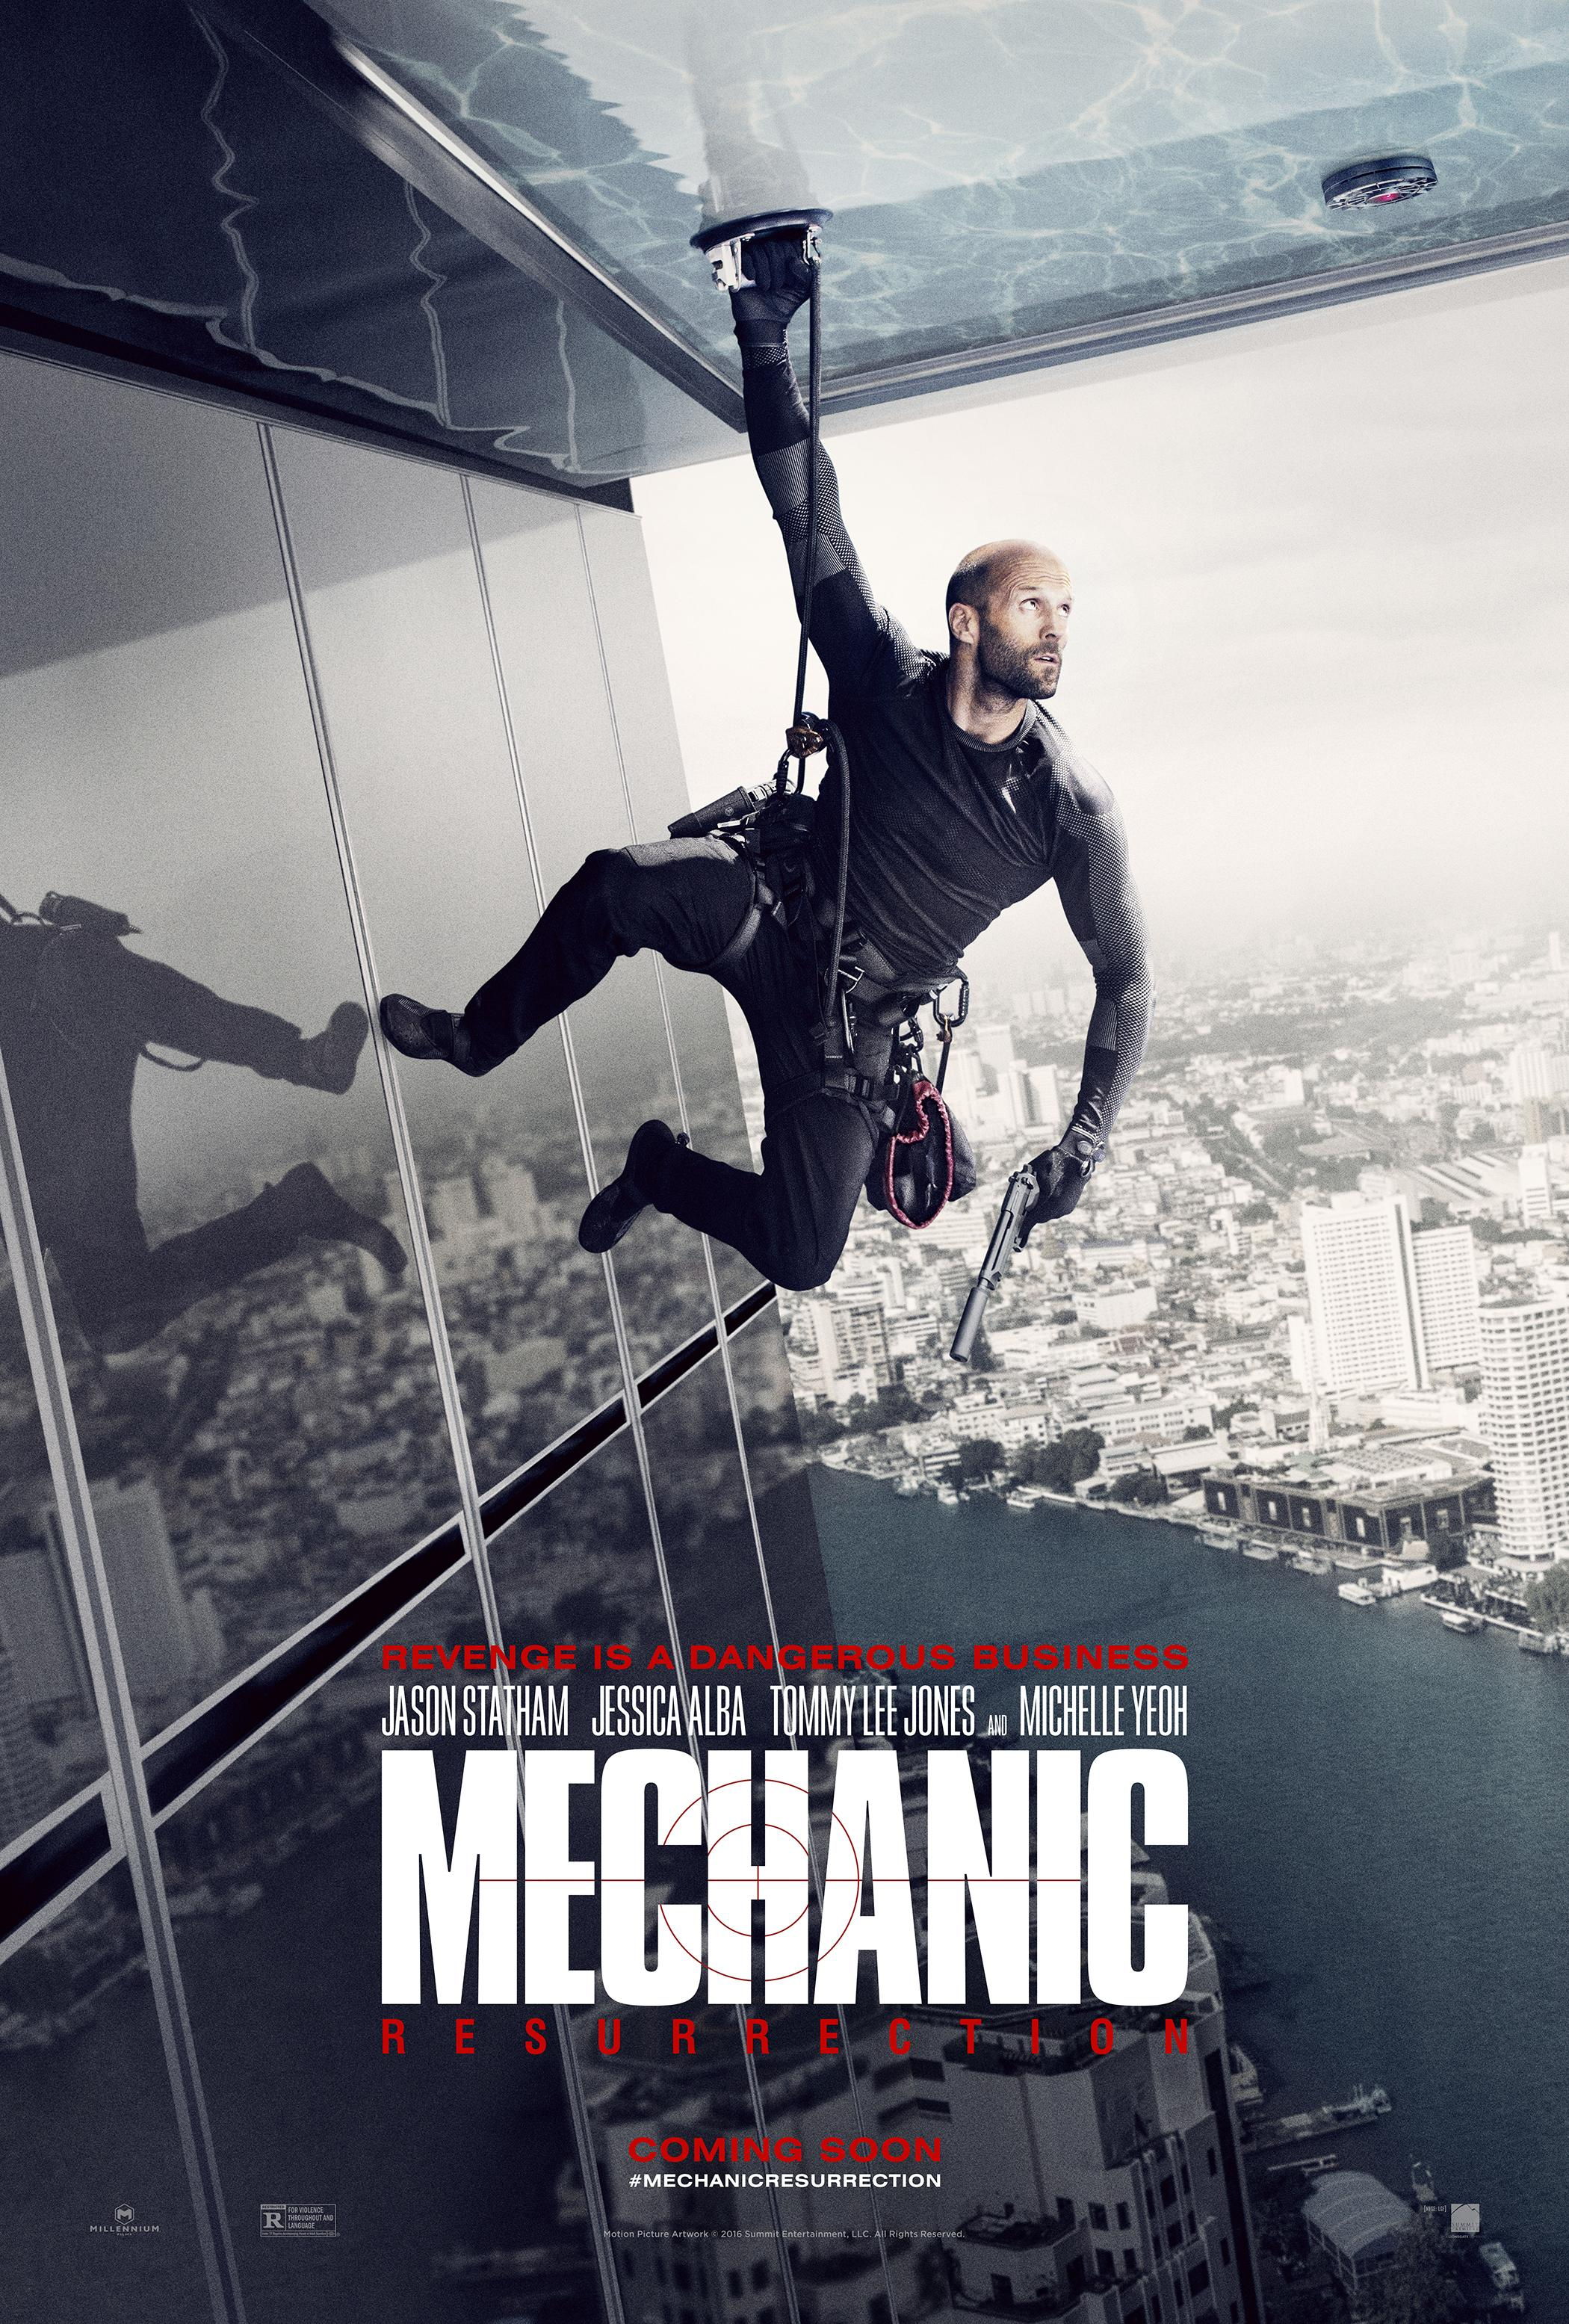 The Mechanic 2 | Teaser Trailer